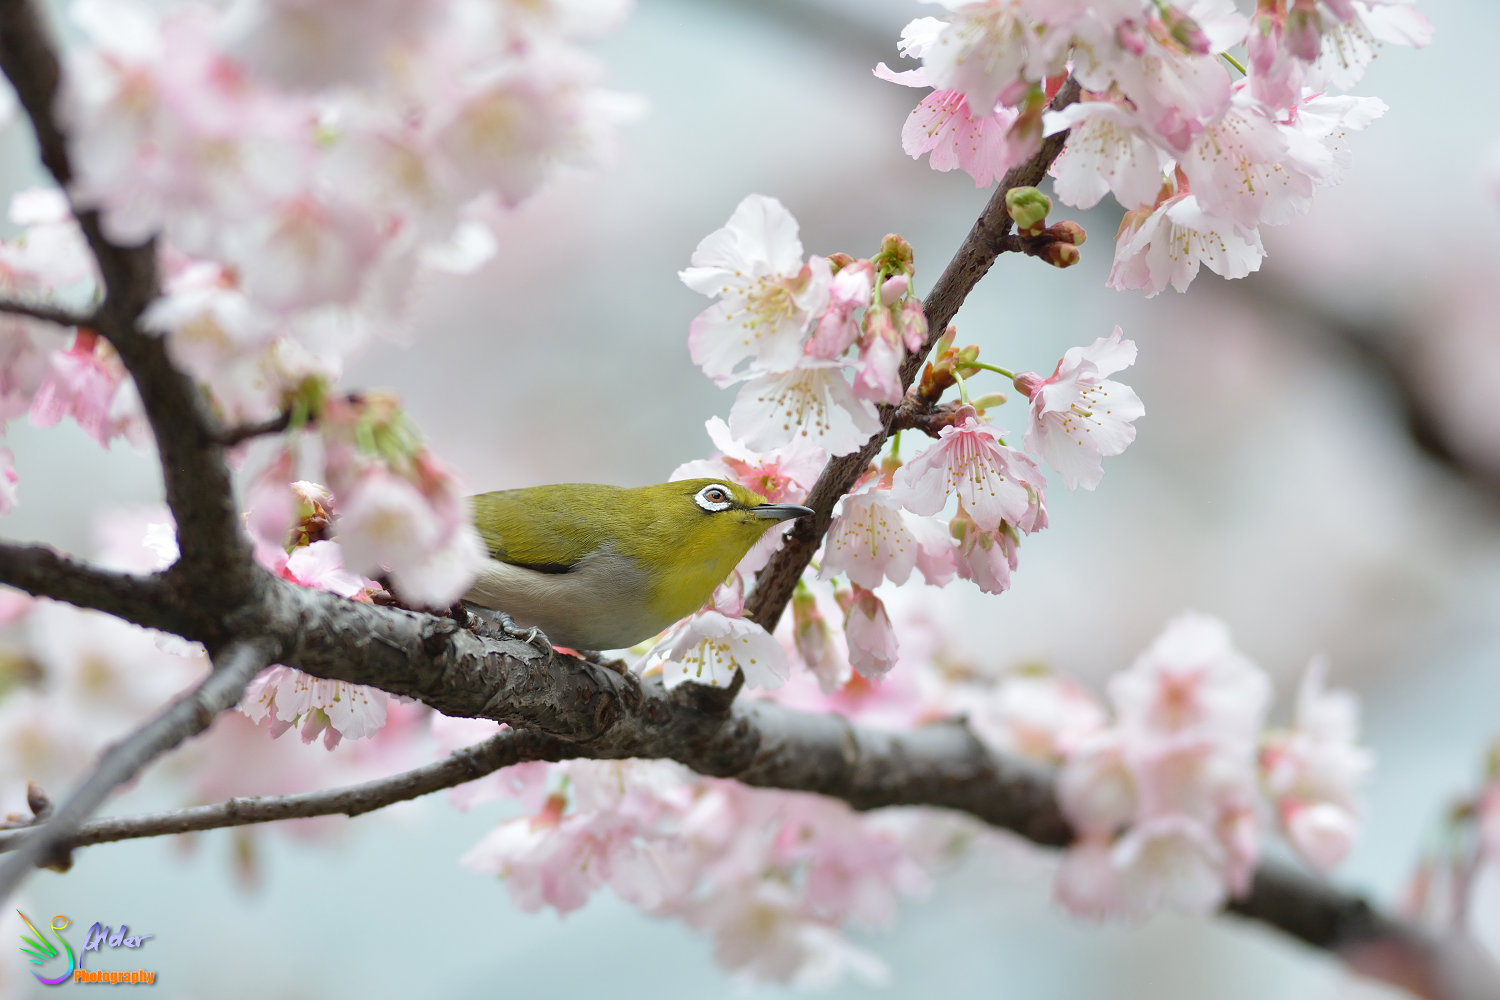 Sakura_White-eye_6724